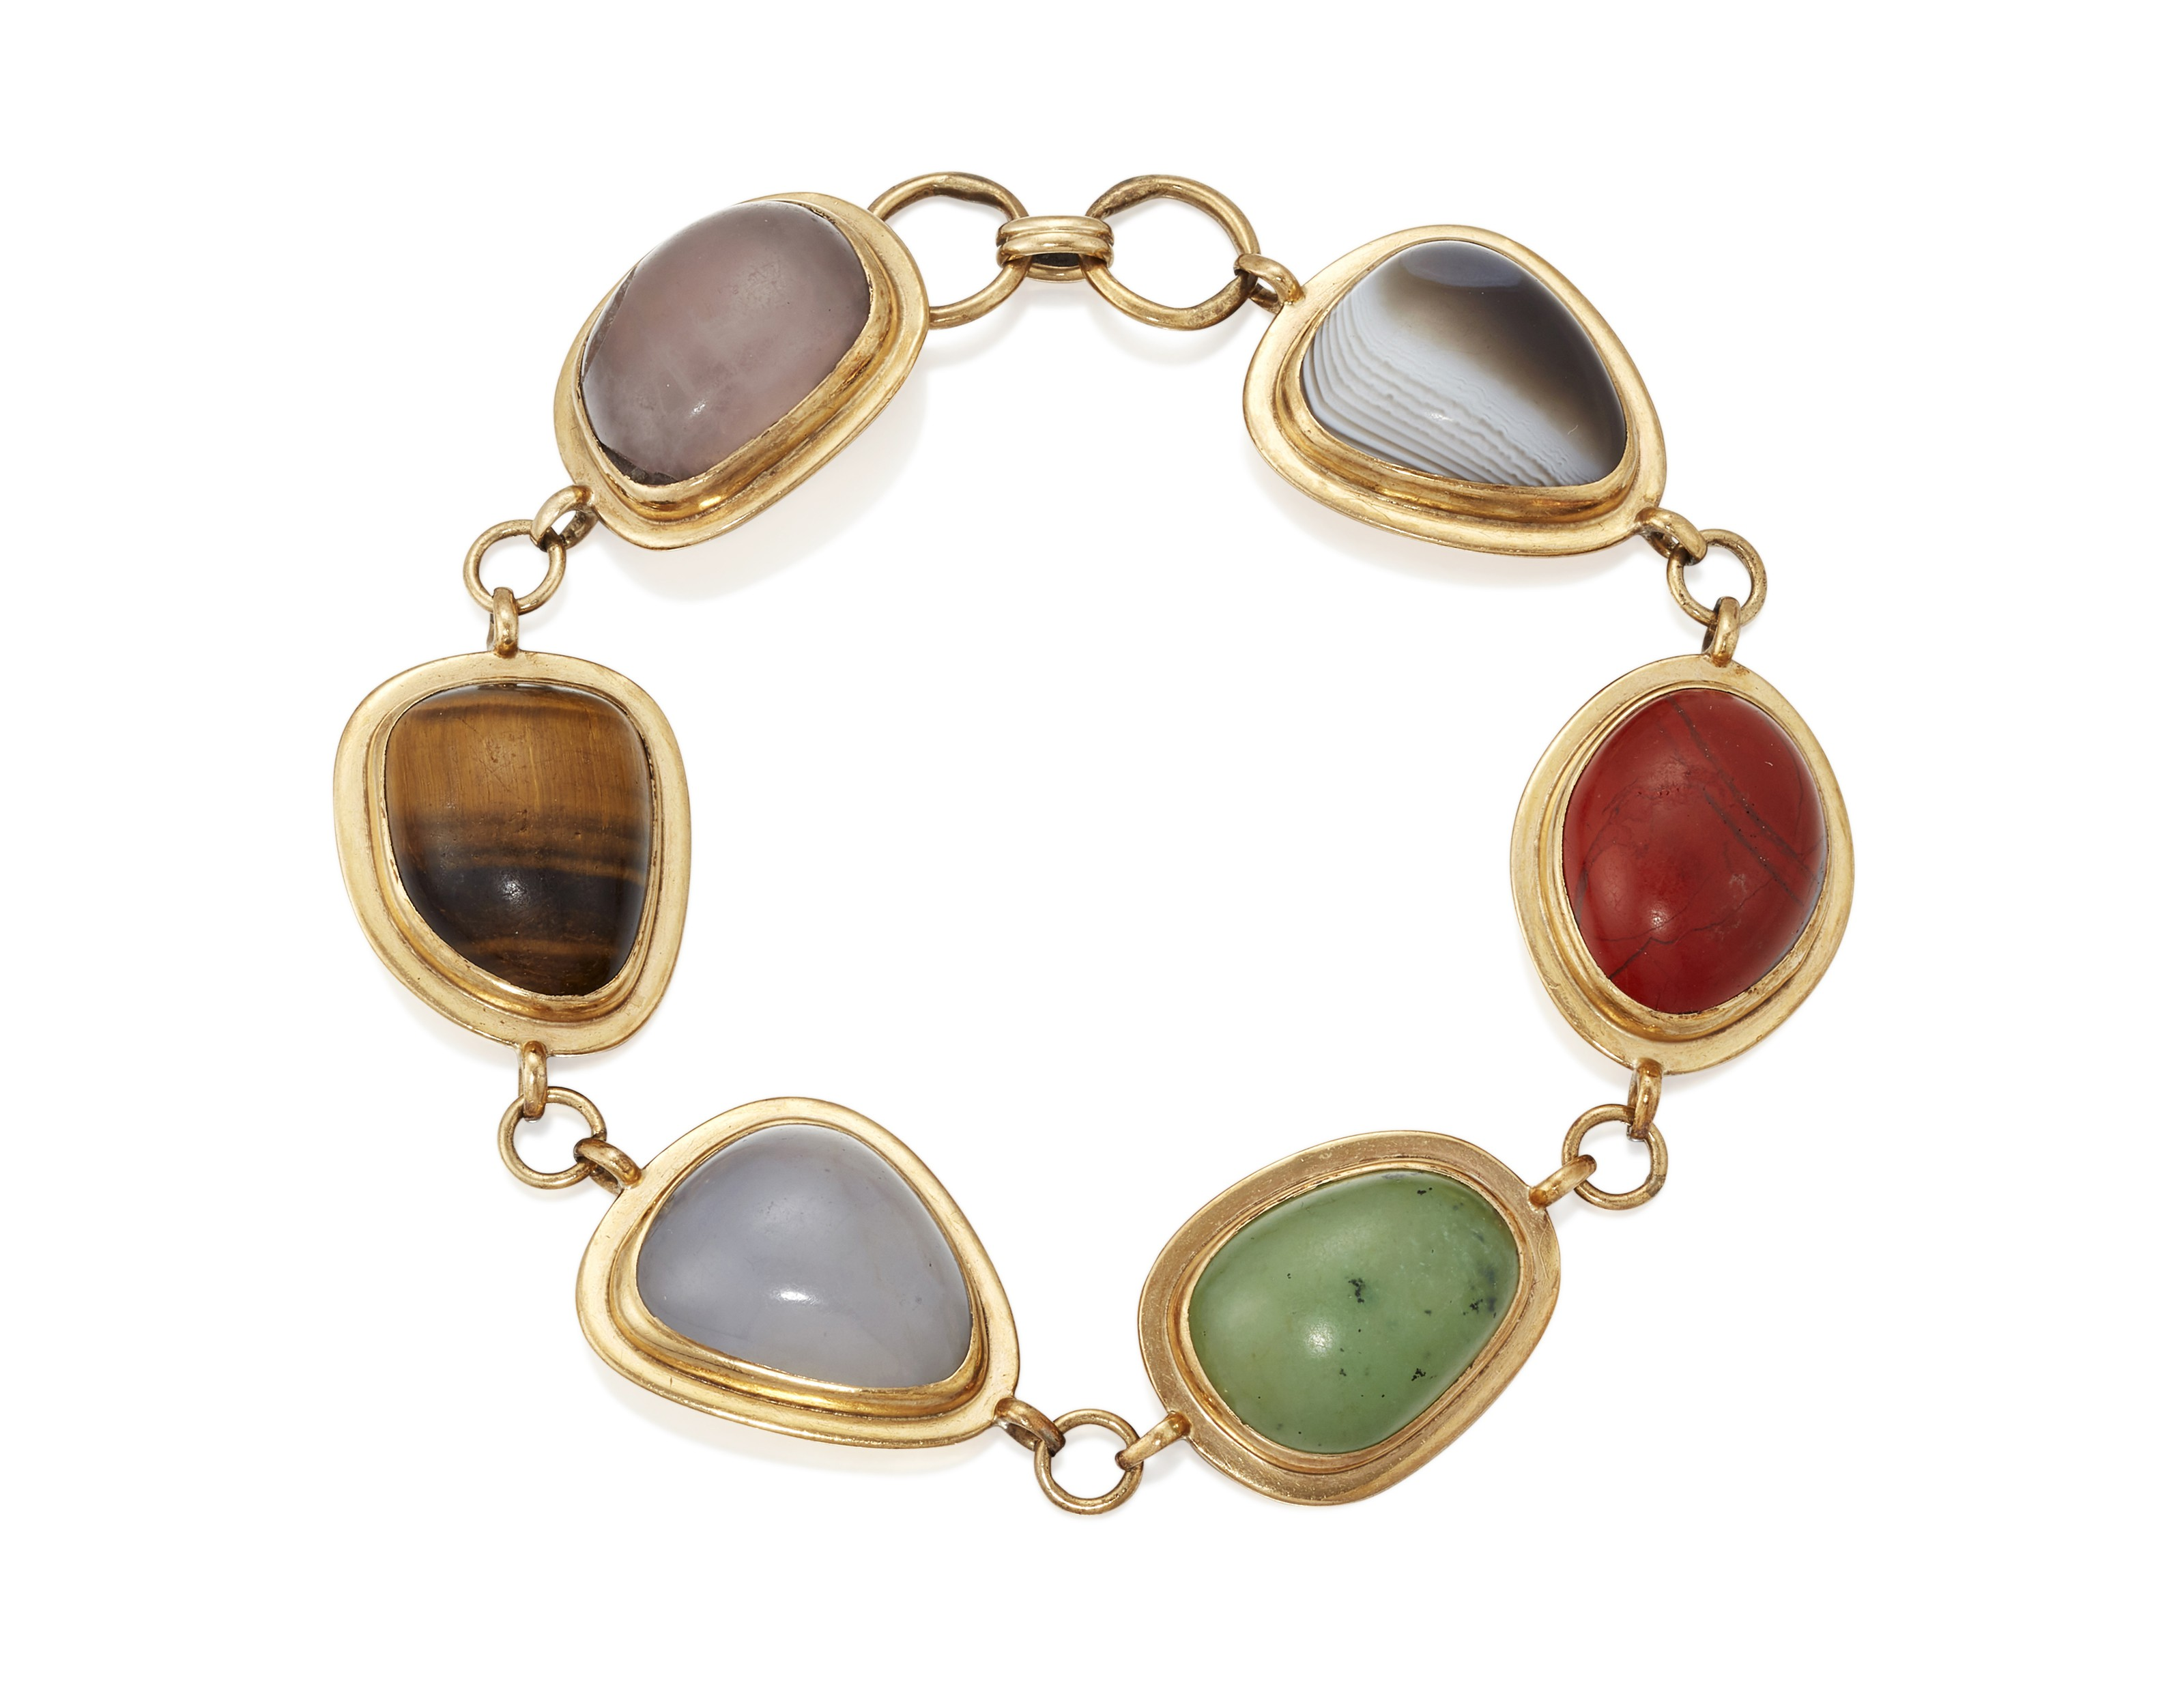 A hardstone-mounted gold bracelet of vari-shaped cabochons